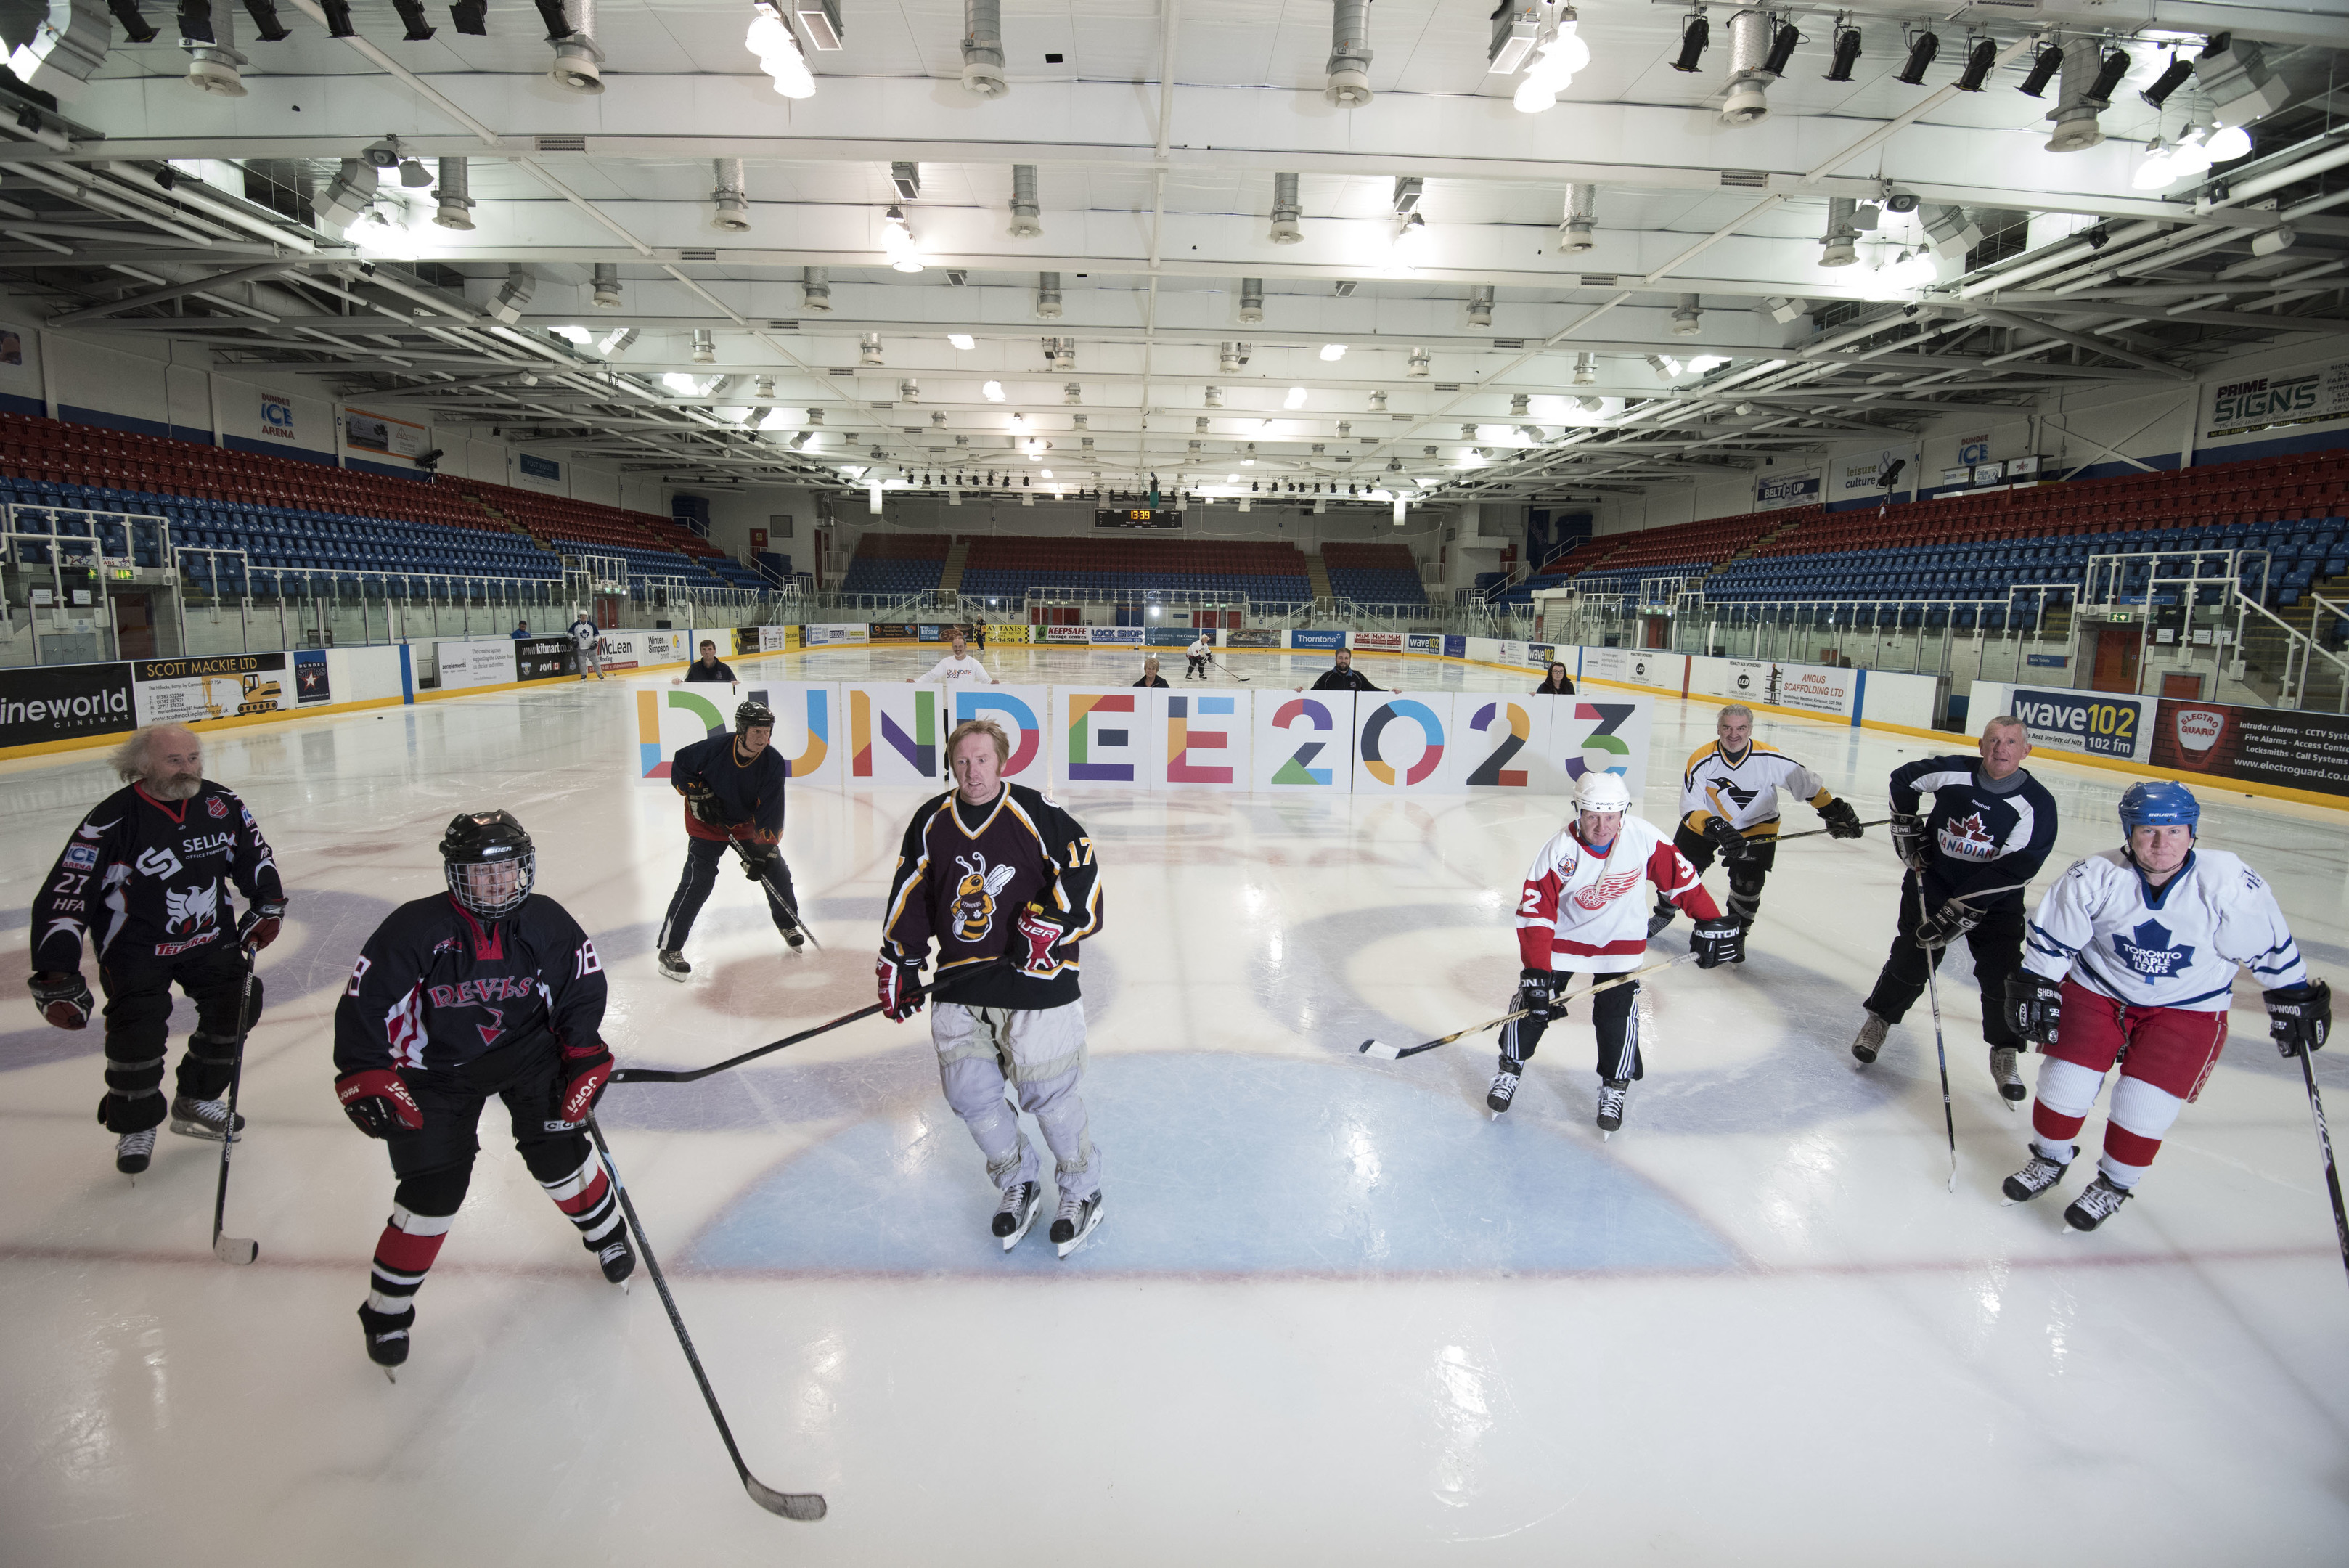 Dundee ice hockey veterans are supporting the Dundee 2023 bid